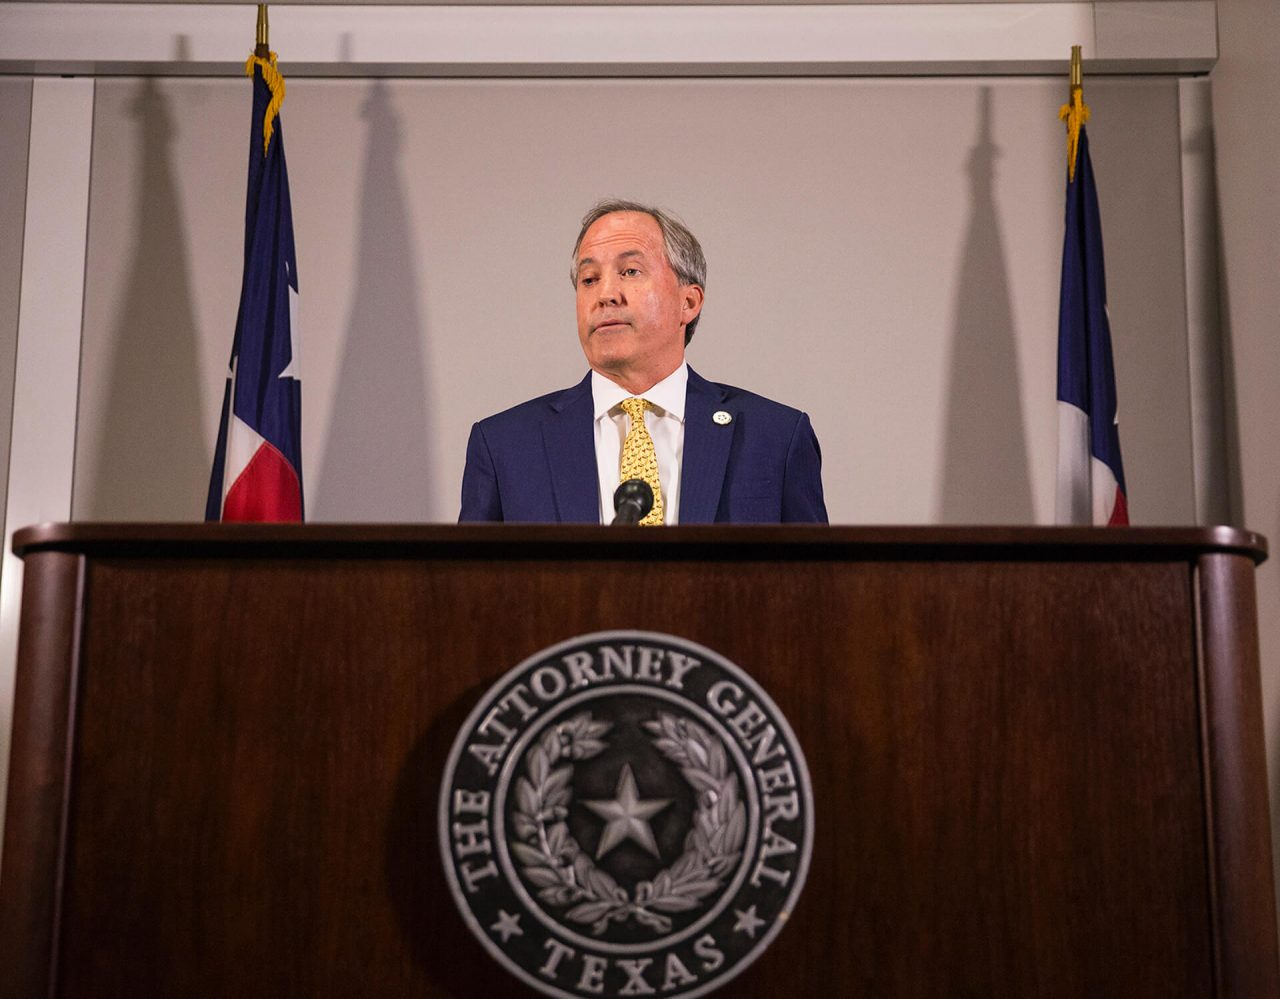 https://thetexan.news/wp-content/uploads/2020/10/Ken-Paxton-1-1280x999.jpg